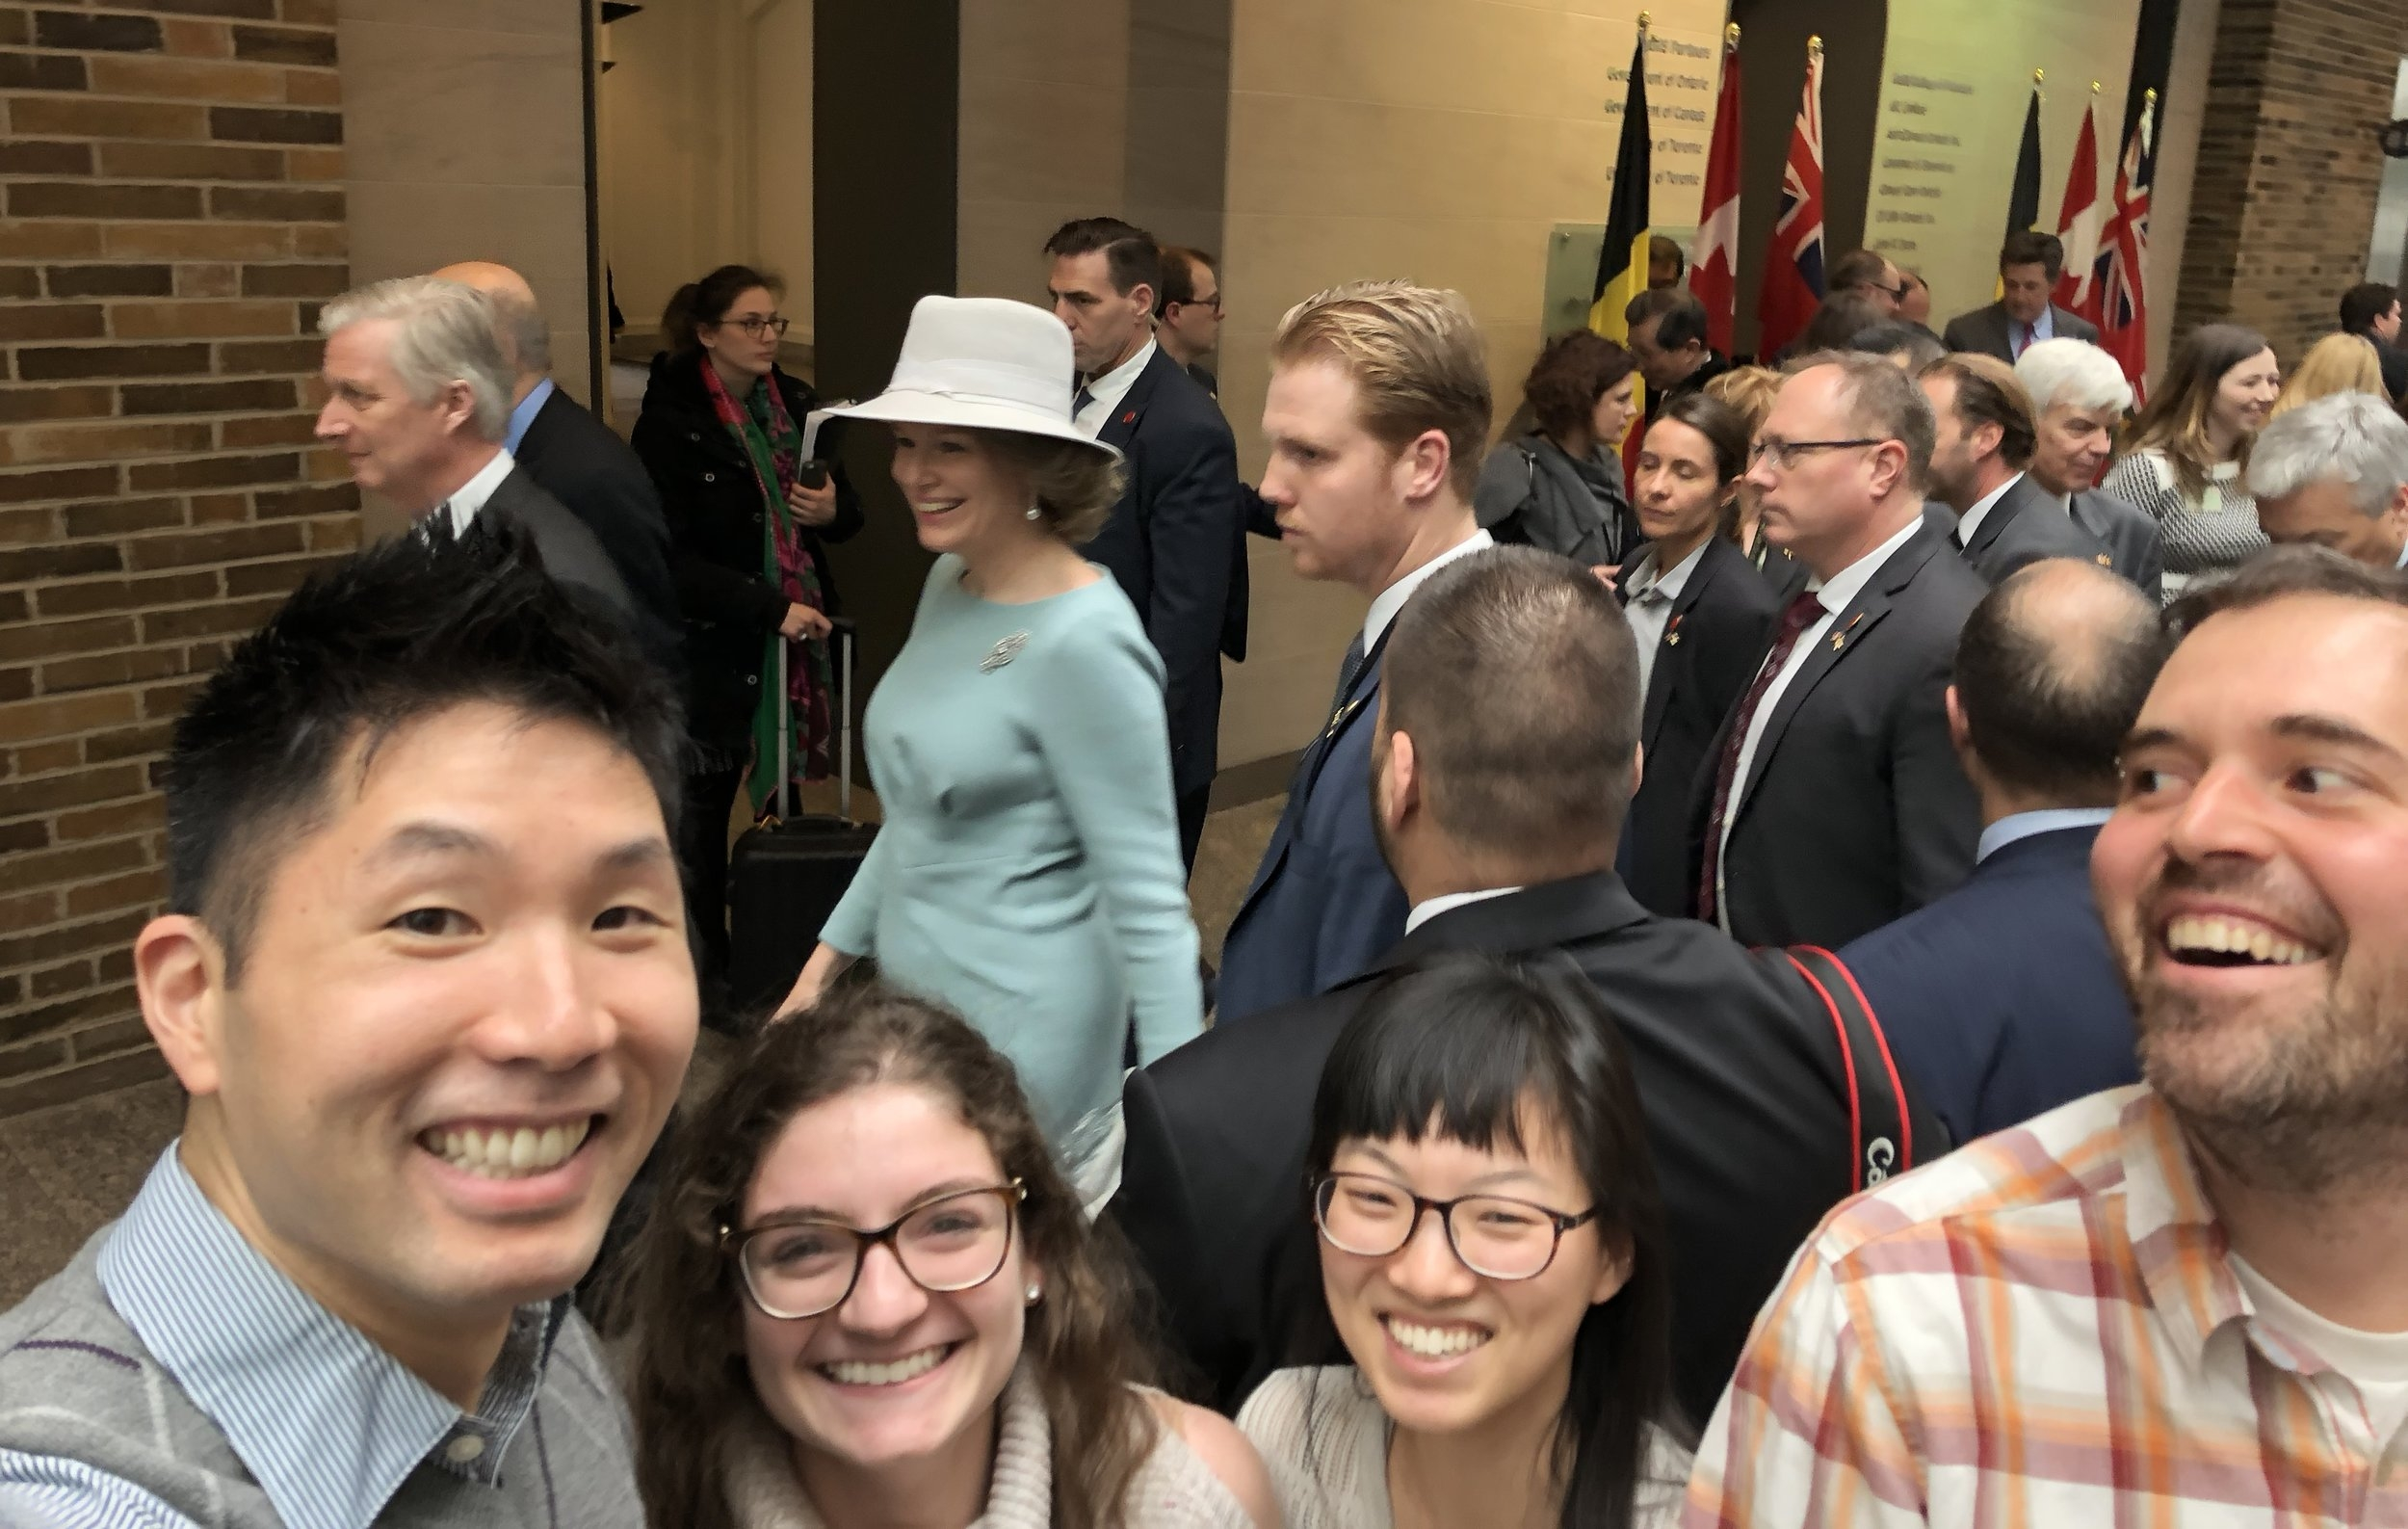 lab selfie with the king and queen of belgium.jpeg